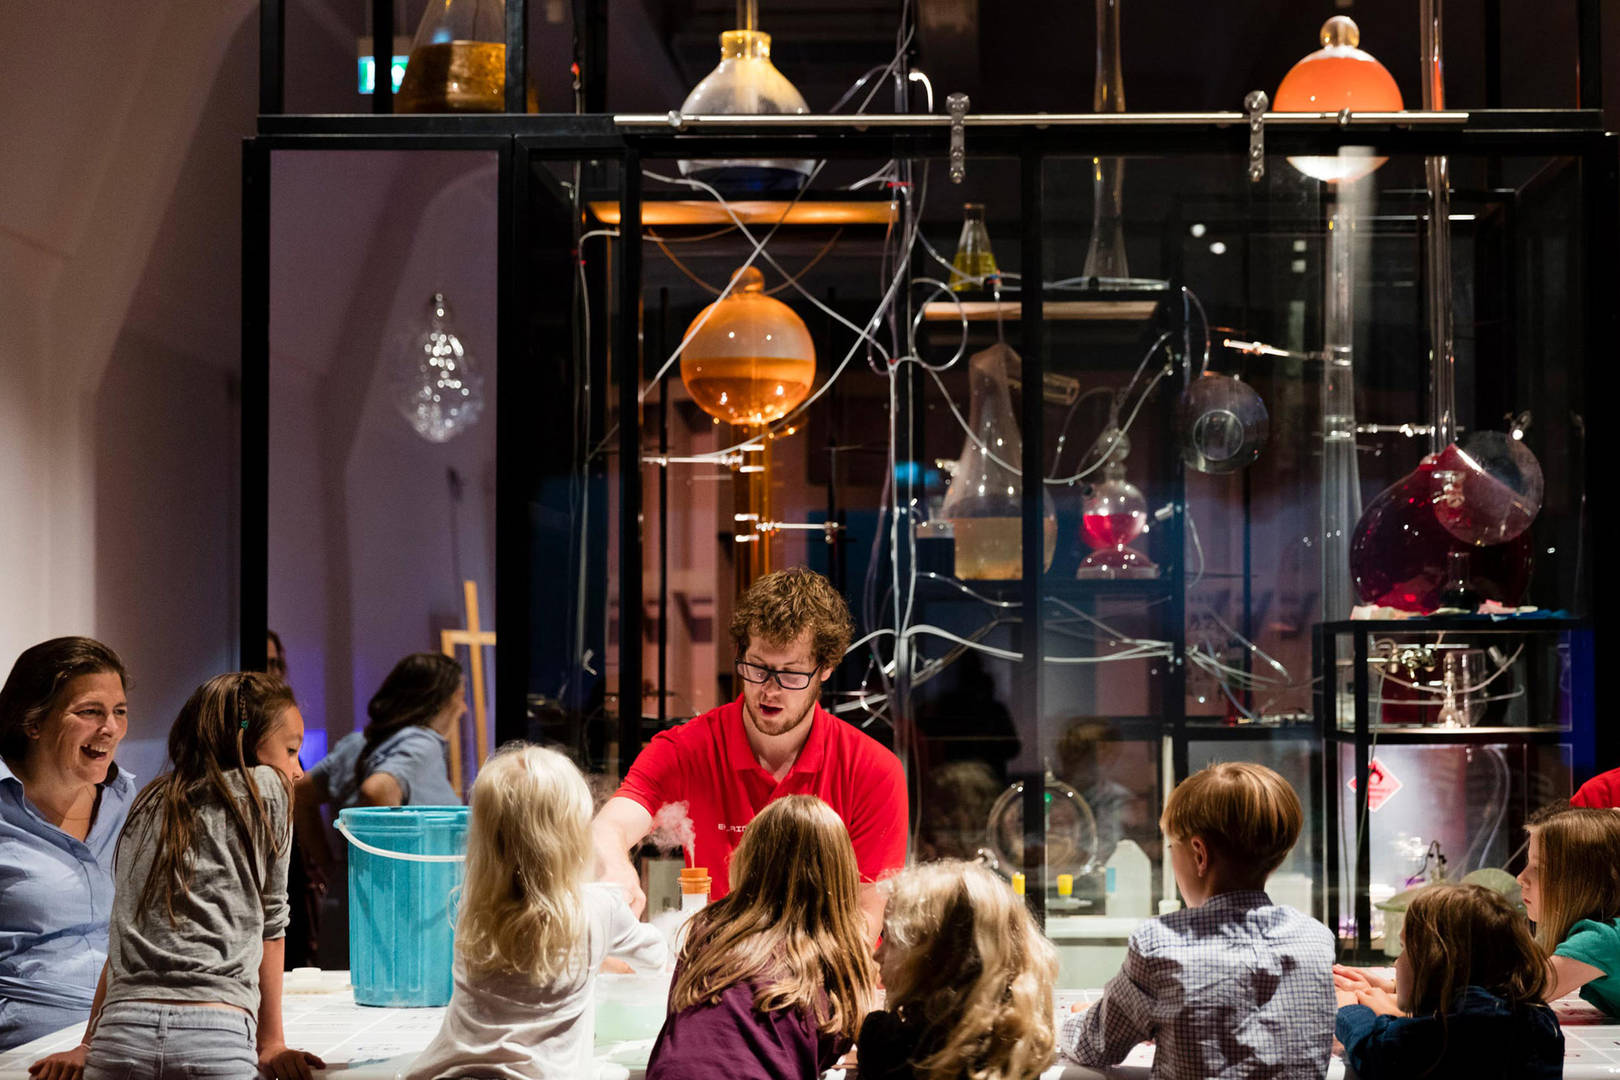 London Science museum kids having fun doing an activity